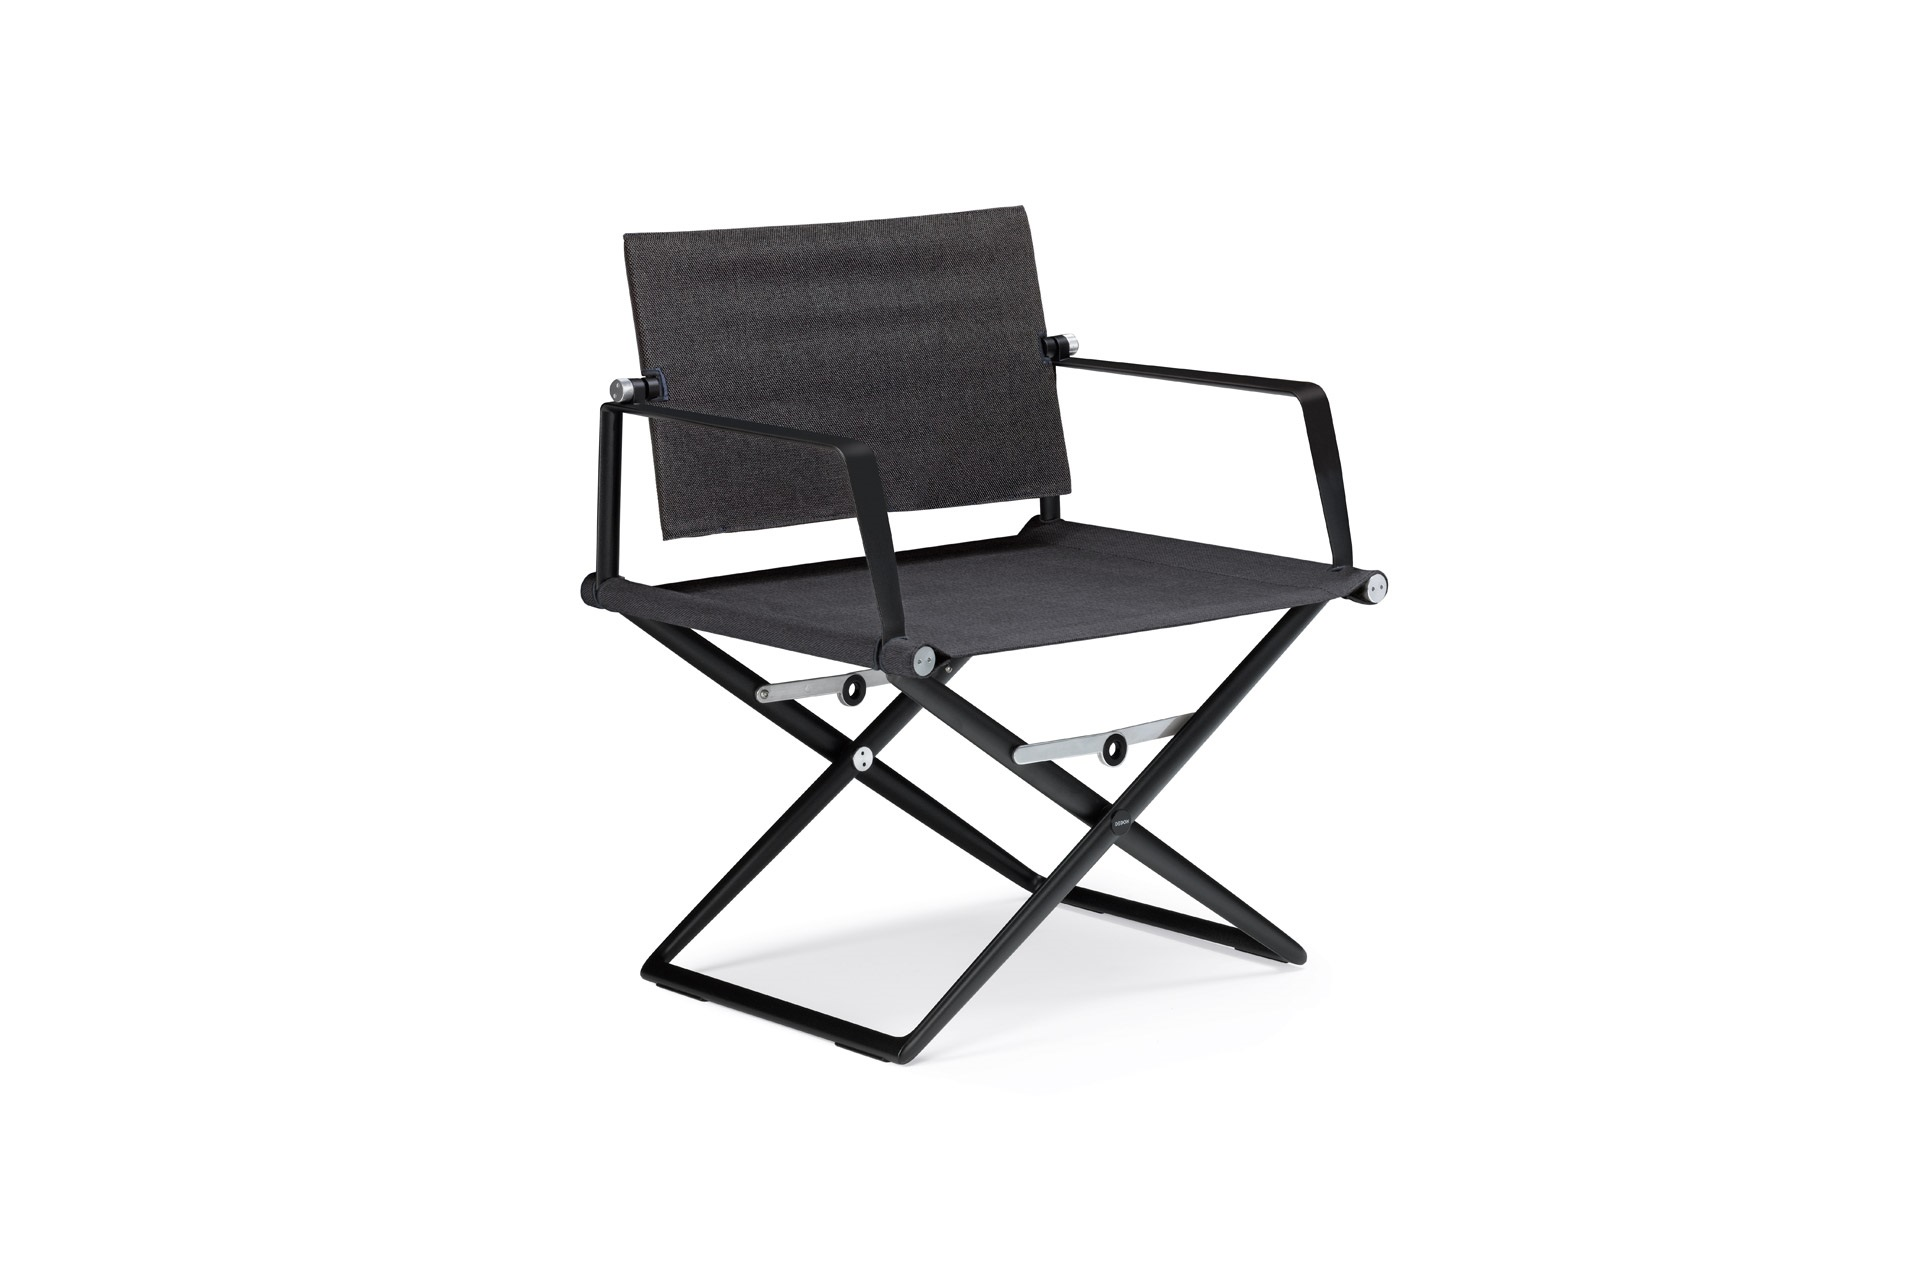 Dedon Seax lounge chair black sail shade